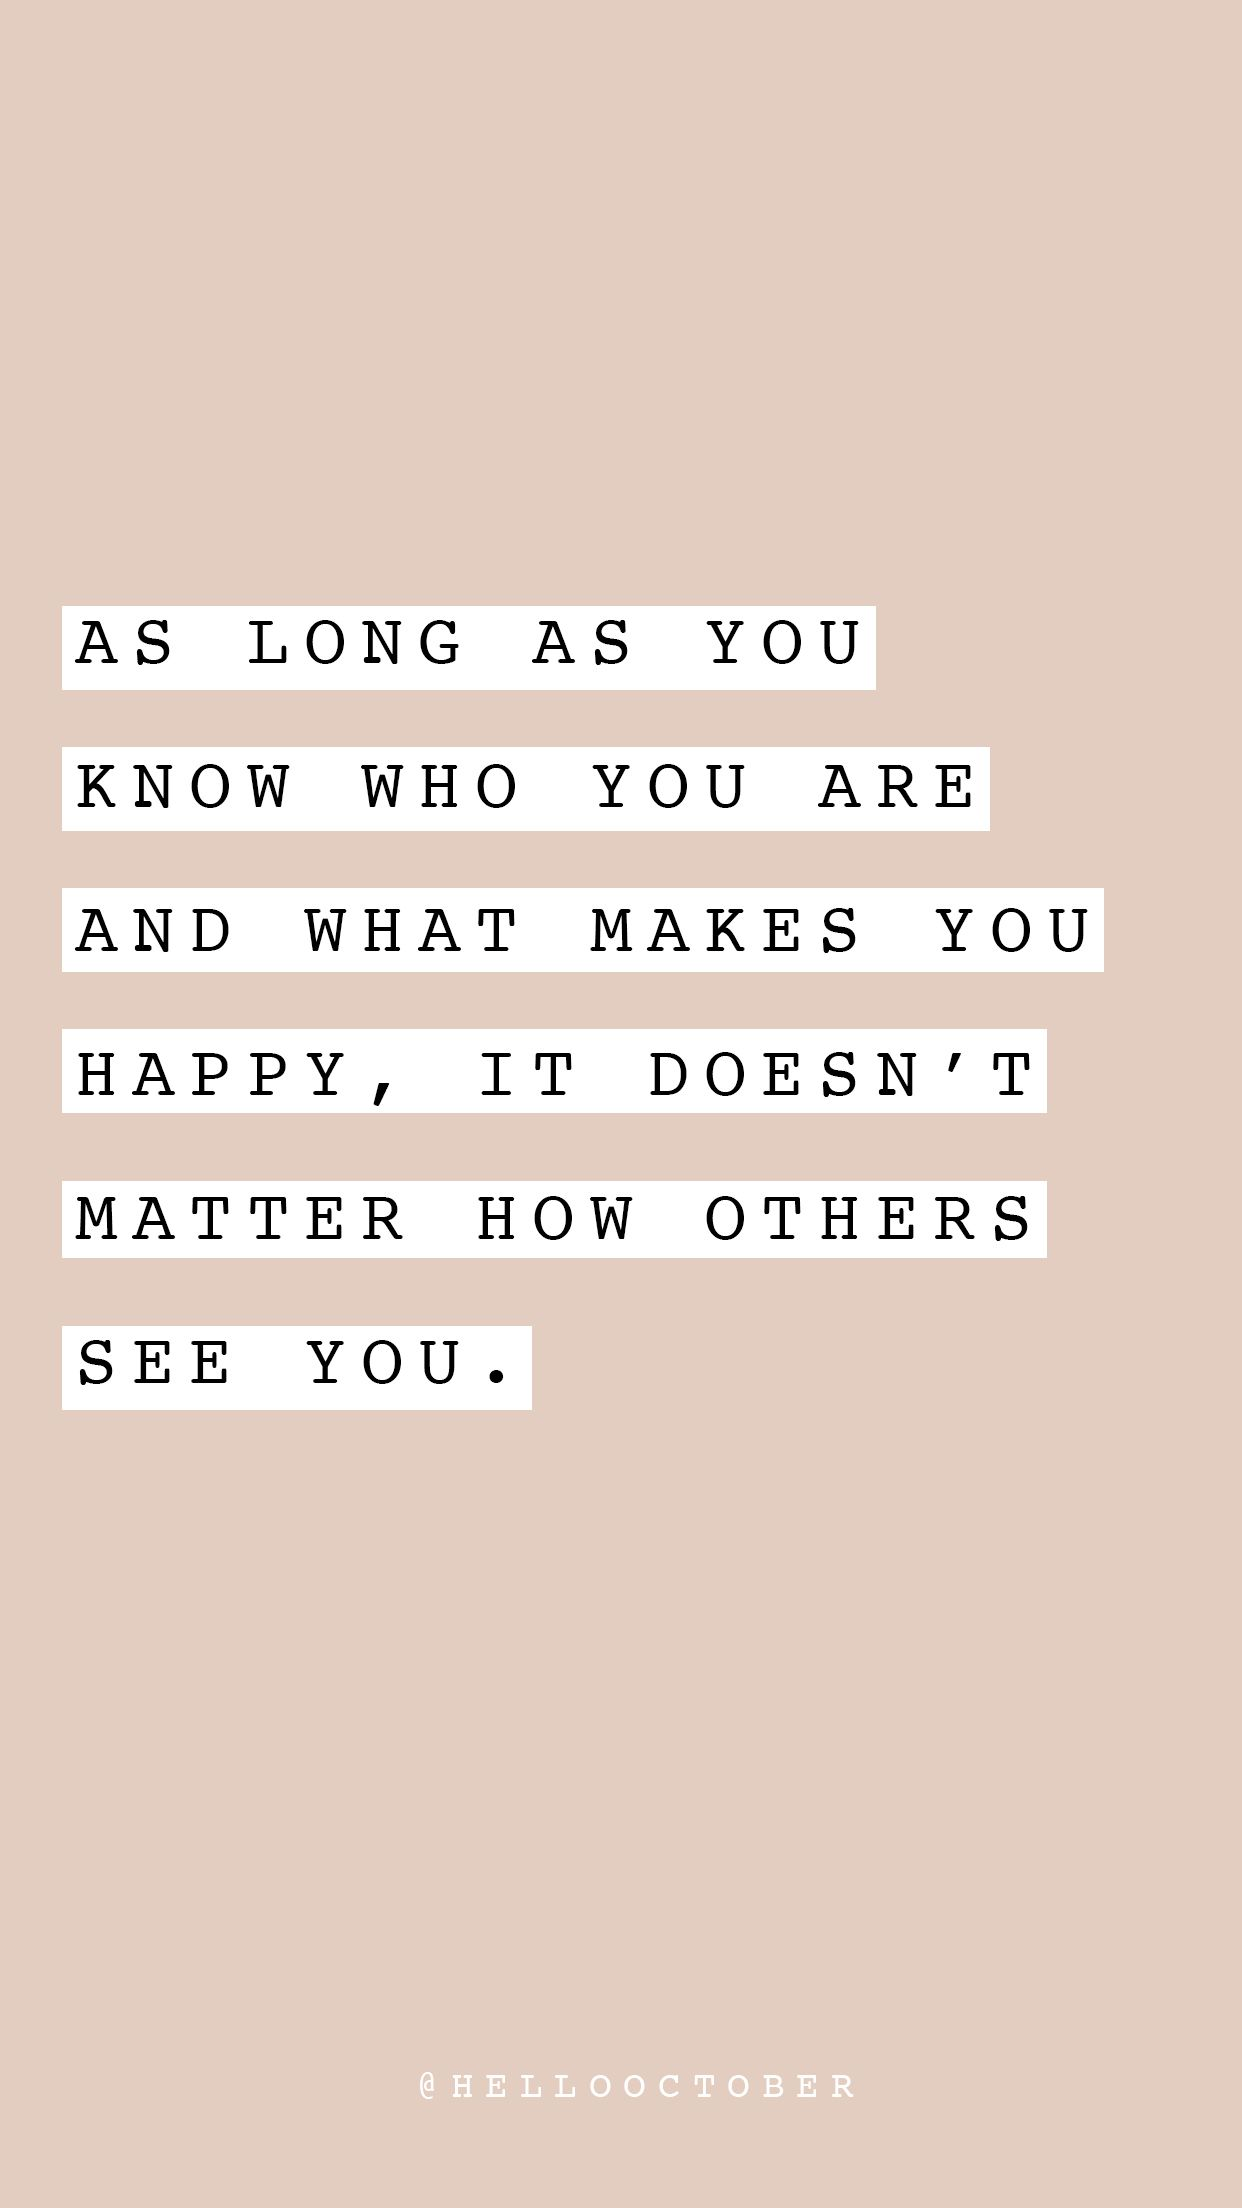 As Long As You Know Who You Are And What Makes You Happy It Doesn